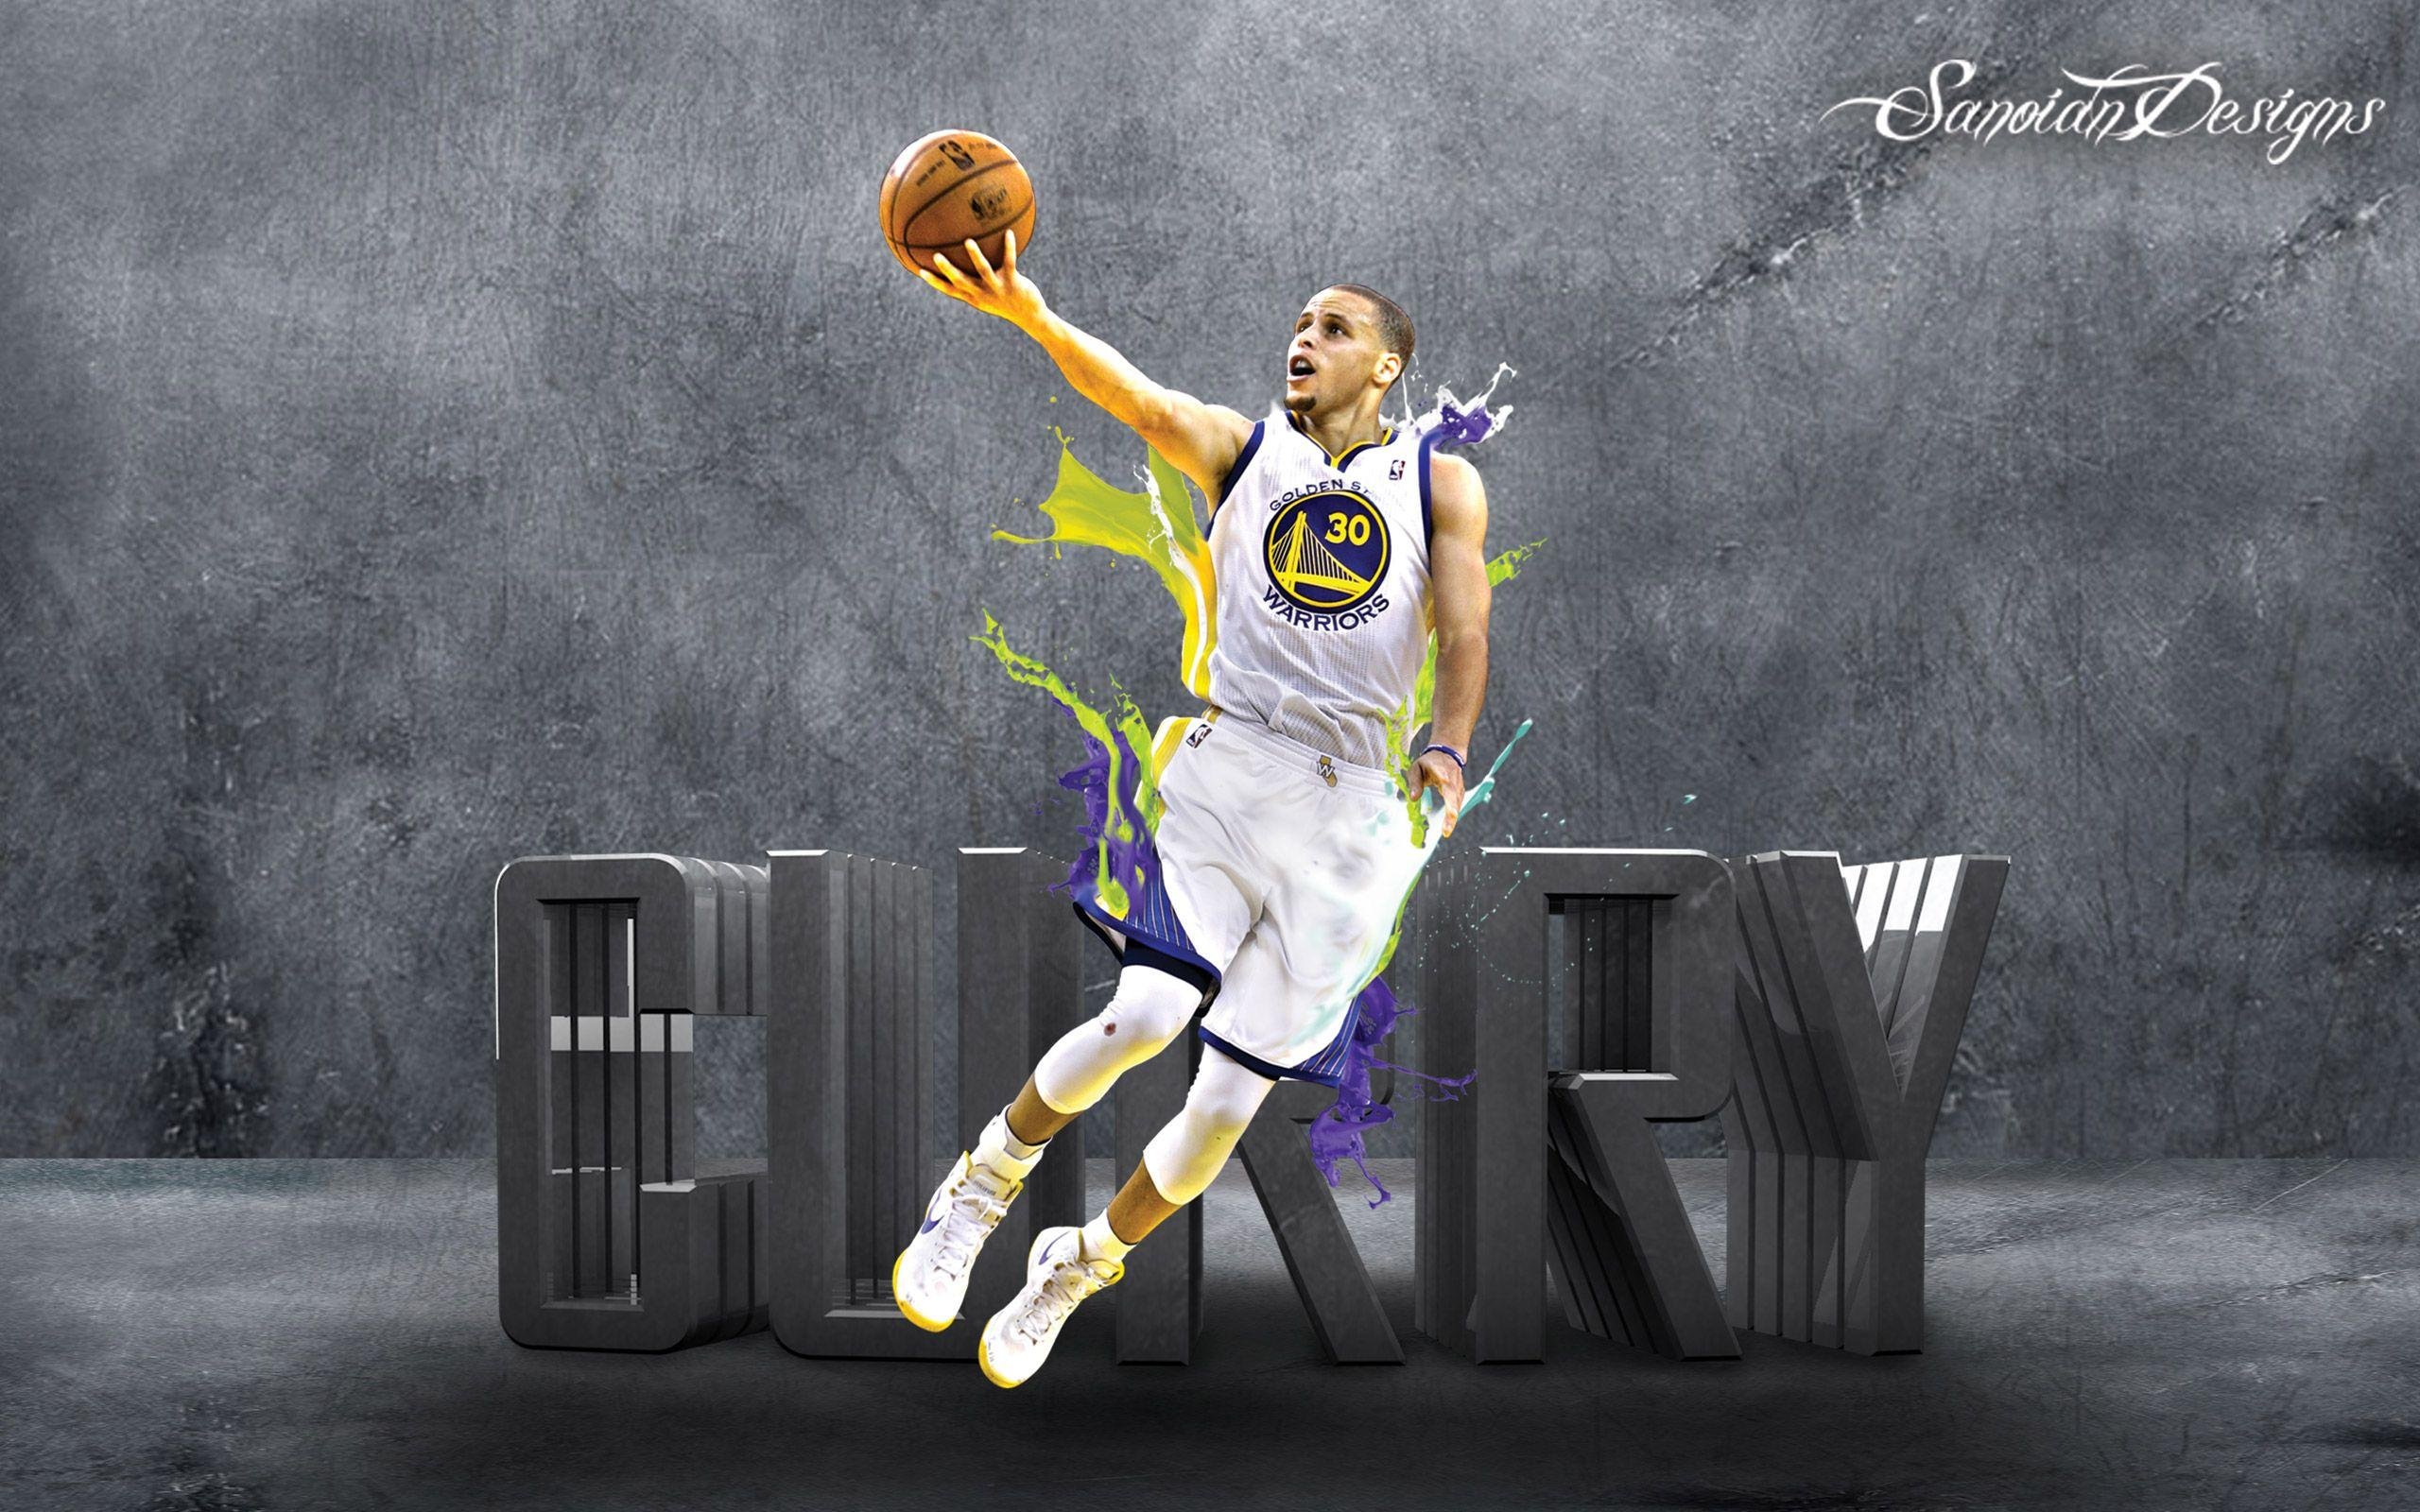 Popular Wallpaper Logo Stephen Curry - wp1809209  Gallery_193264.jpg